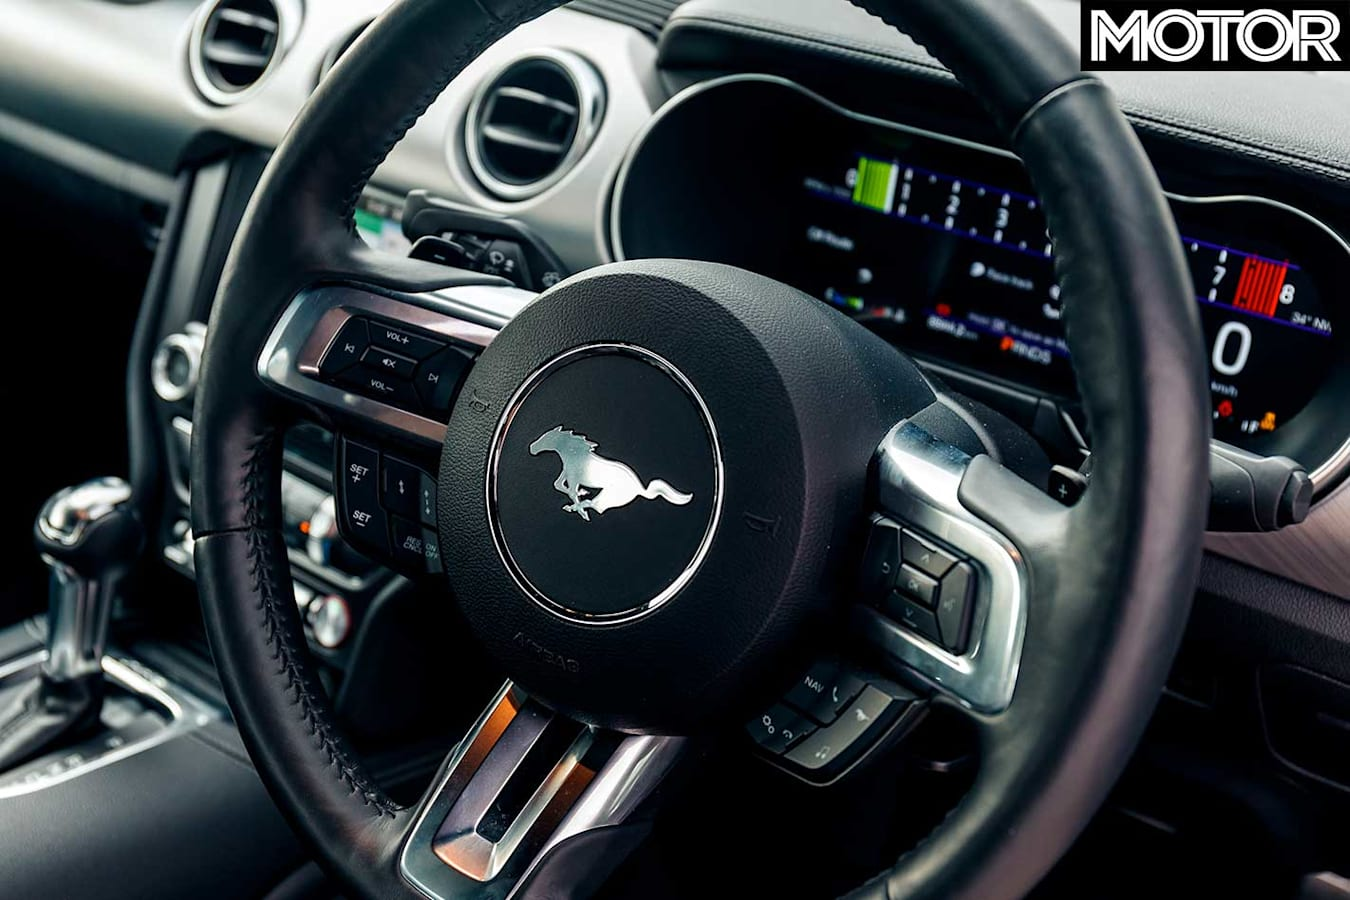 Performance Car Of The Year 2019 9th Place Ford Mustang GT Interior Jpg